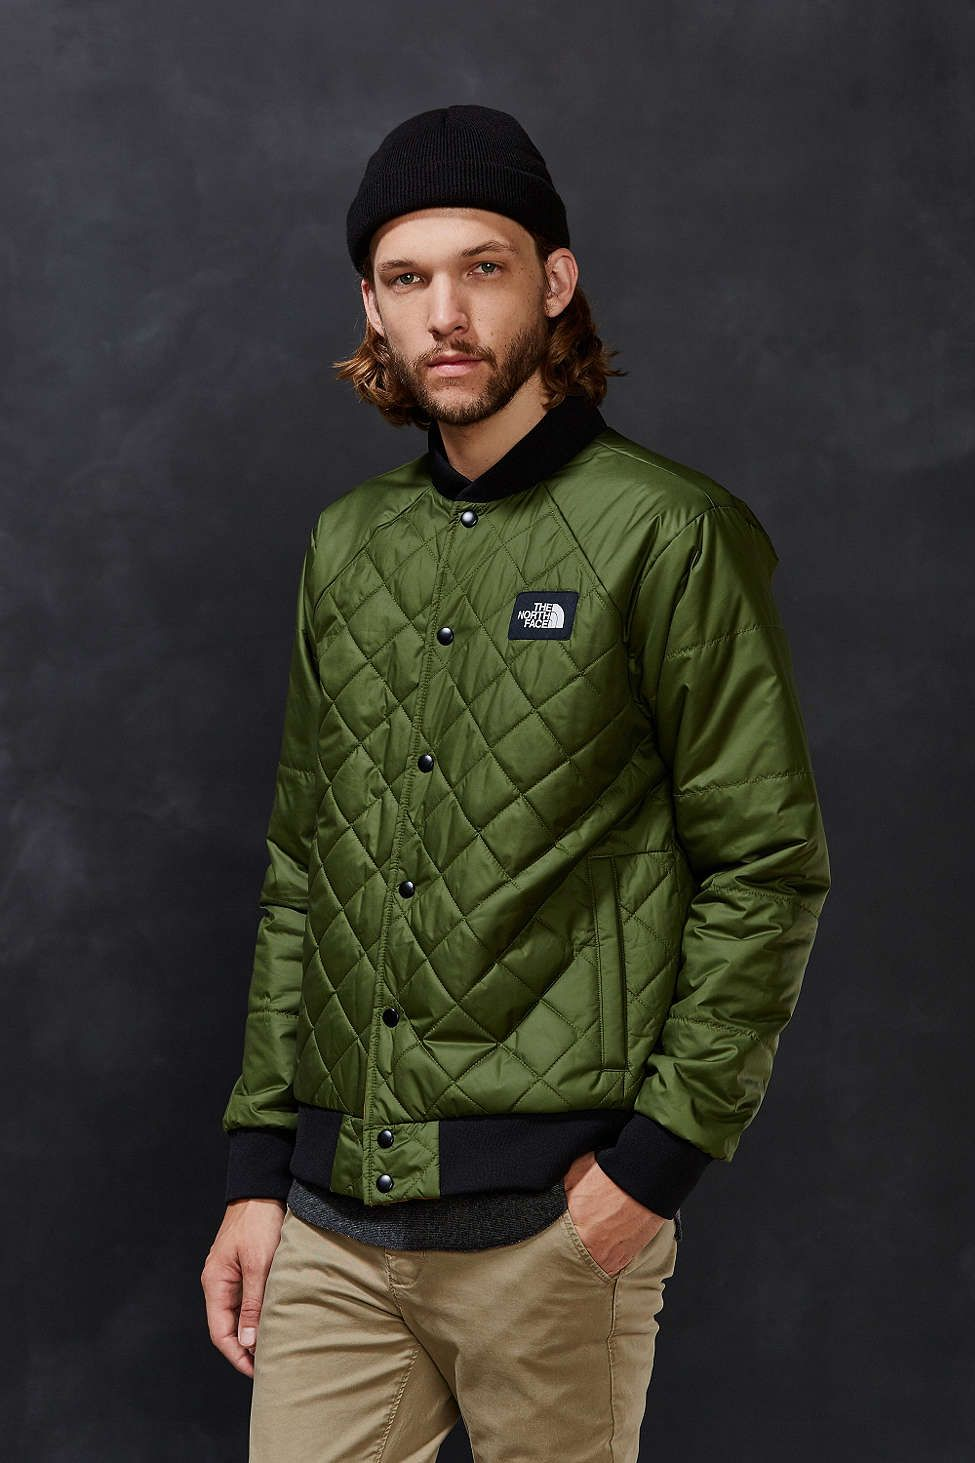 The North Face Jester Bomber Jacket The north face